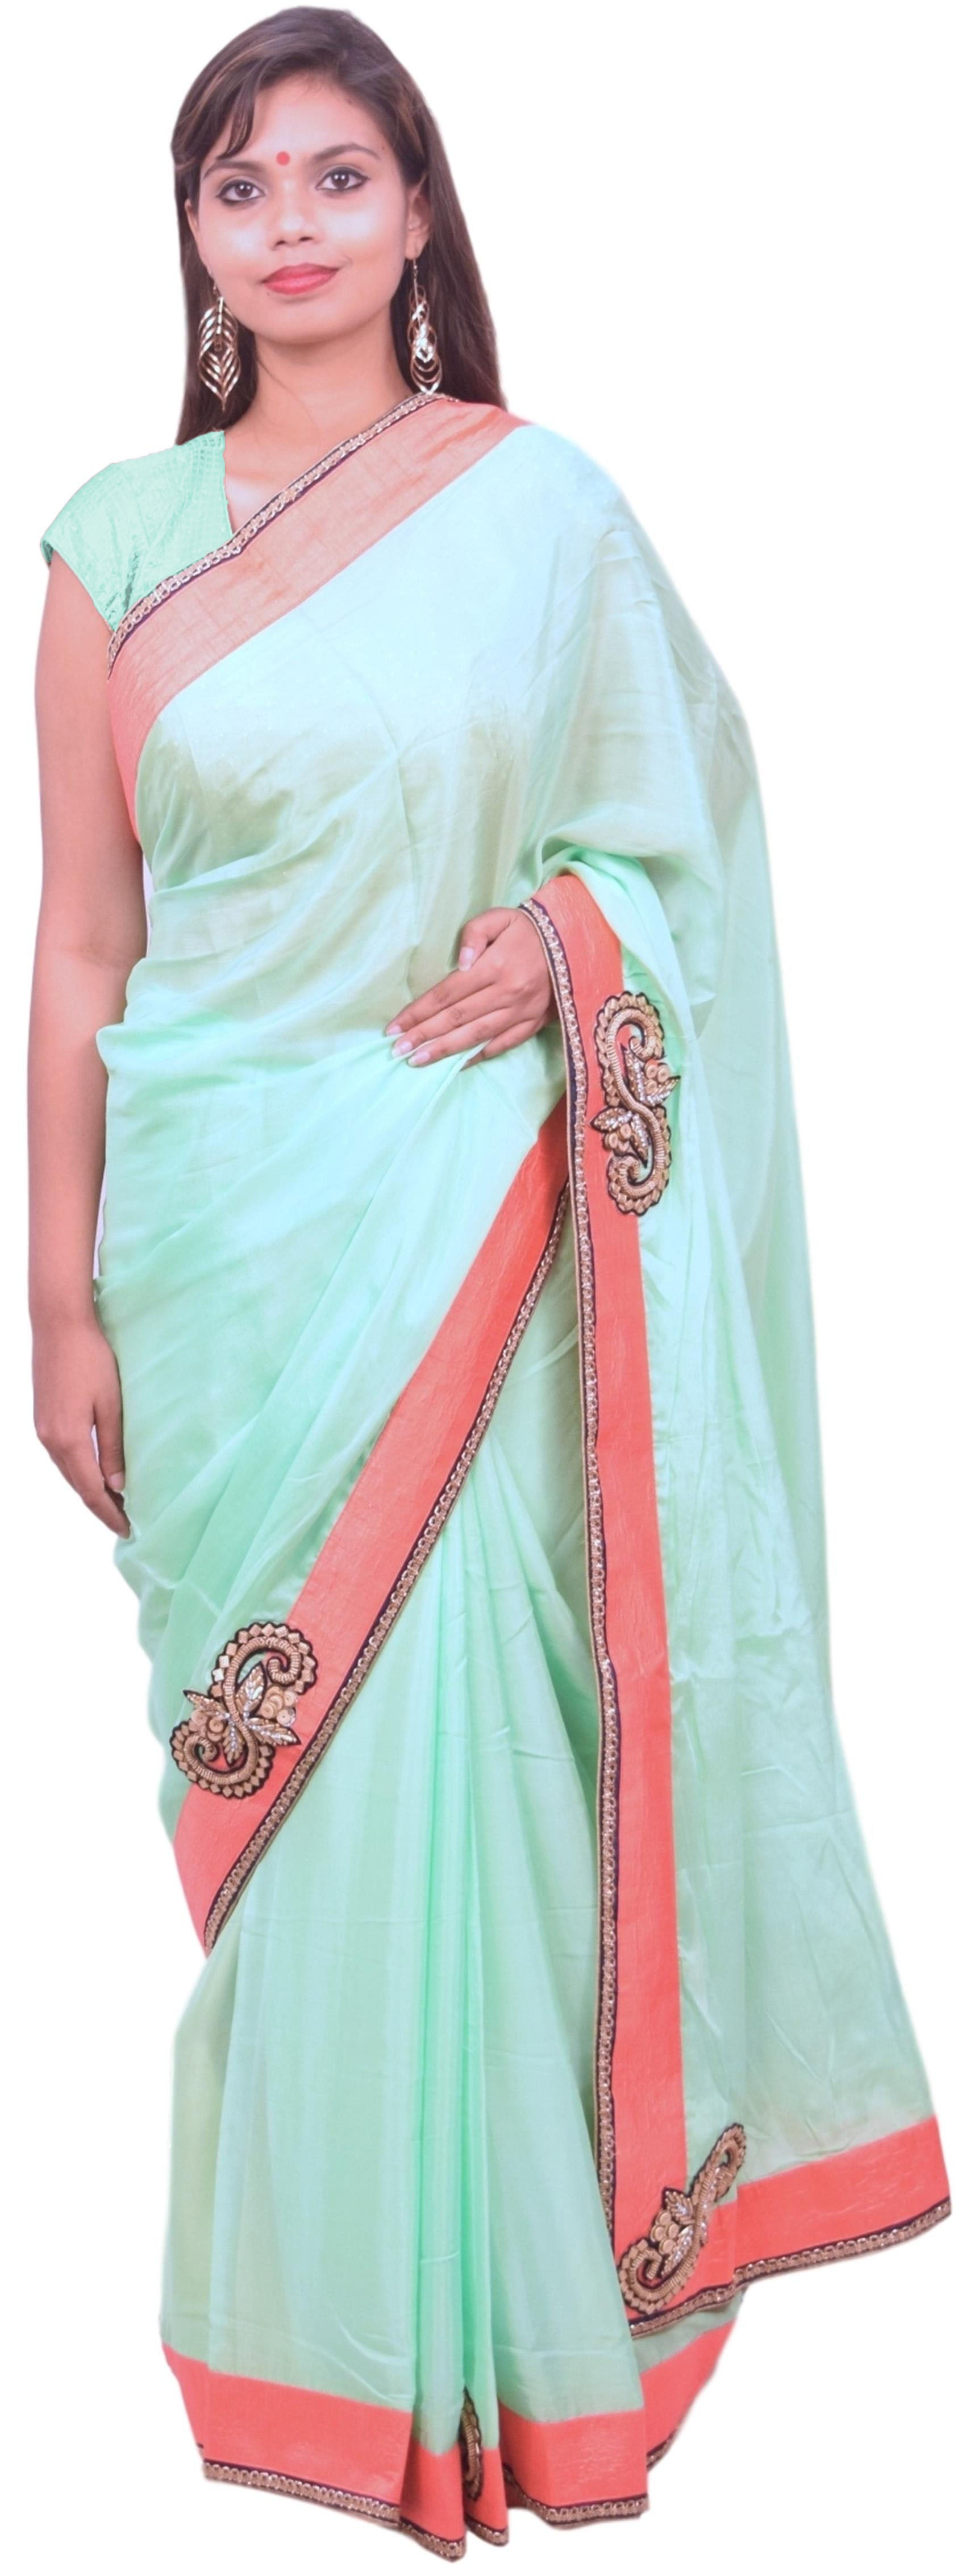 Pista Green Designer Wedding Partywear Ethnic Bridal Crepe (Chinon) Hand Embroidery Beads Thread Zari Cutdana Stone Work Kolkata Women Saree Sari E300